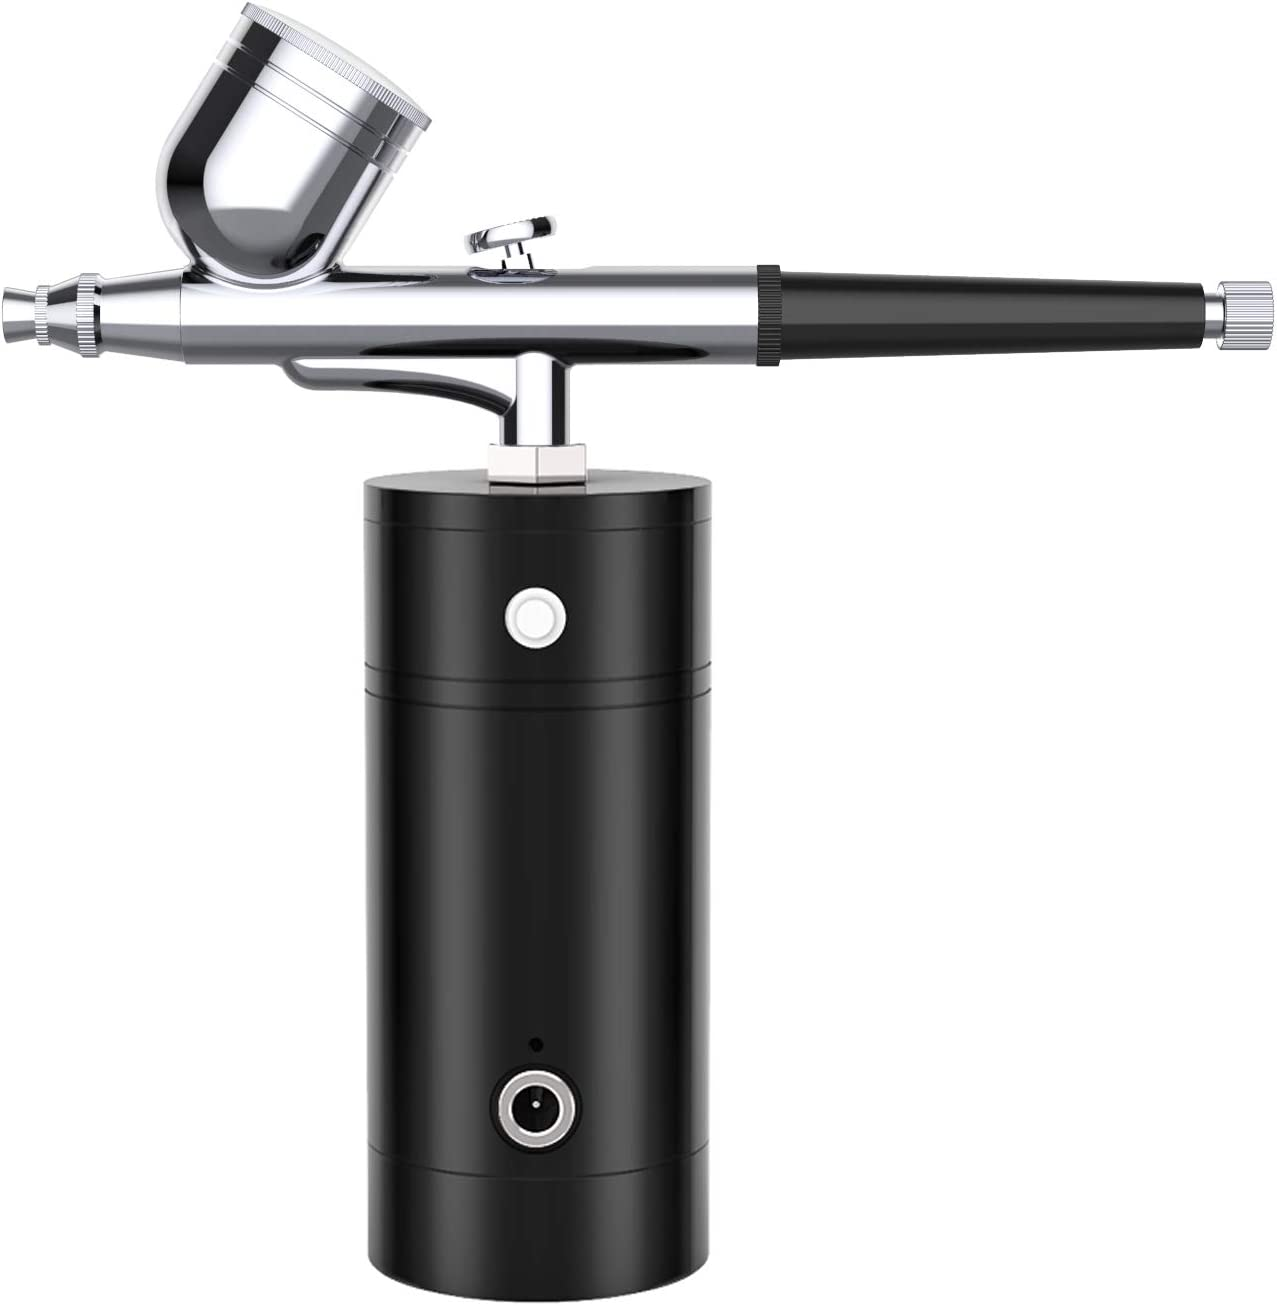 YLINGSU Airbrush Kit, Rechargeable Handheld Mini Air Compressor Airbrush Set, Portable Cordless Airbrush Gun with Low Noise for Makeup, Tattoo, Nail Art, Face Paint, Cake Decor: Arts, Crafts & Sewing